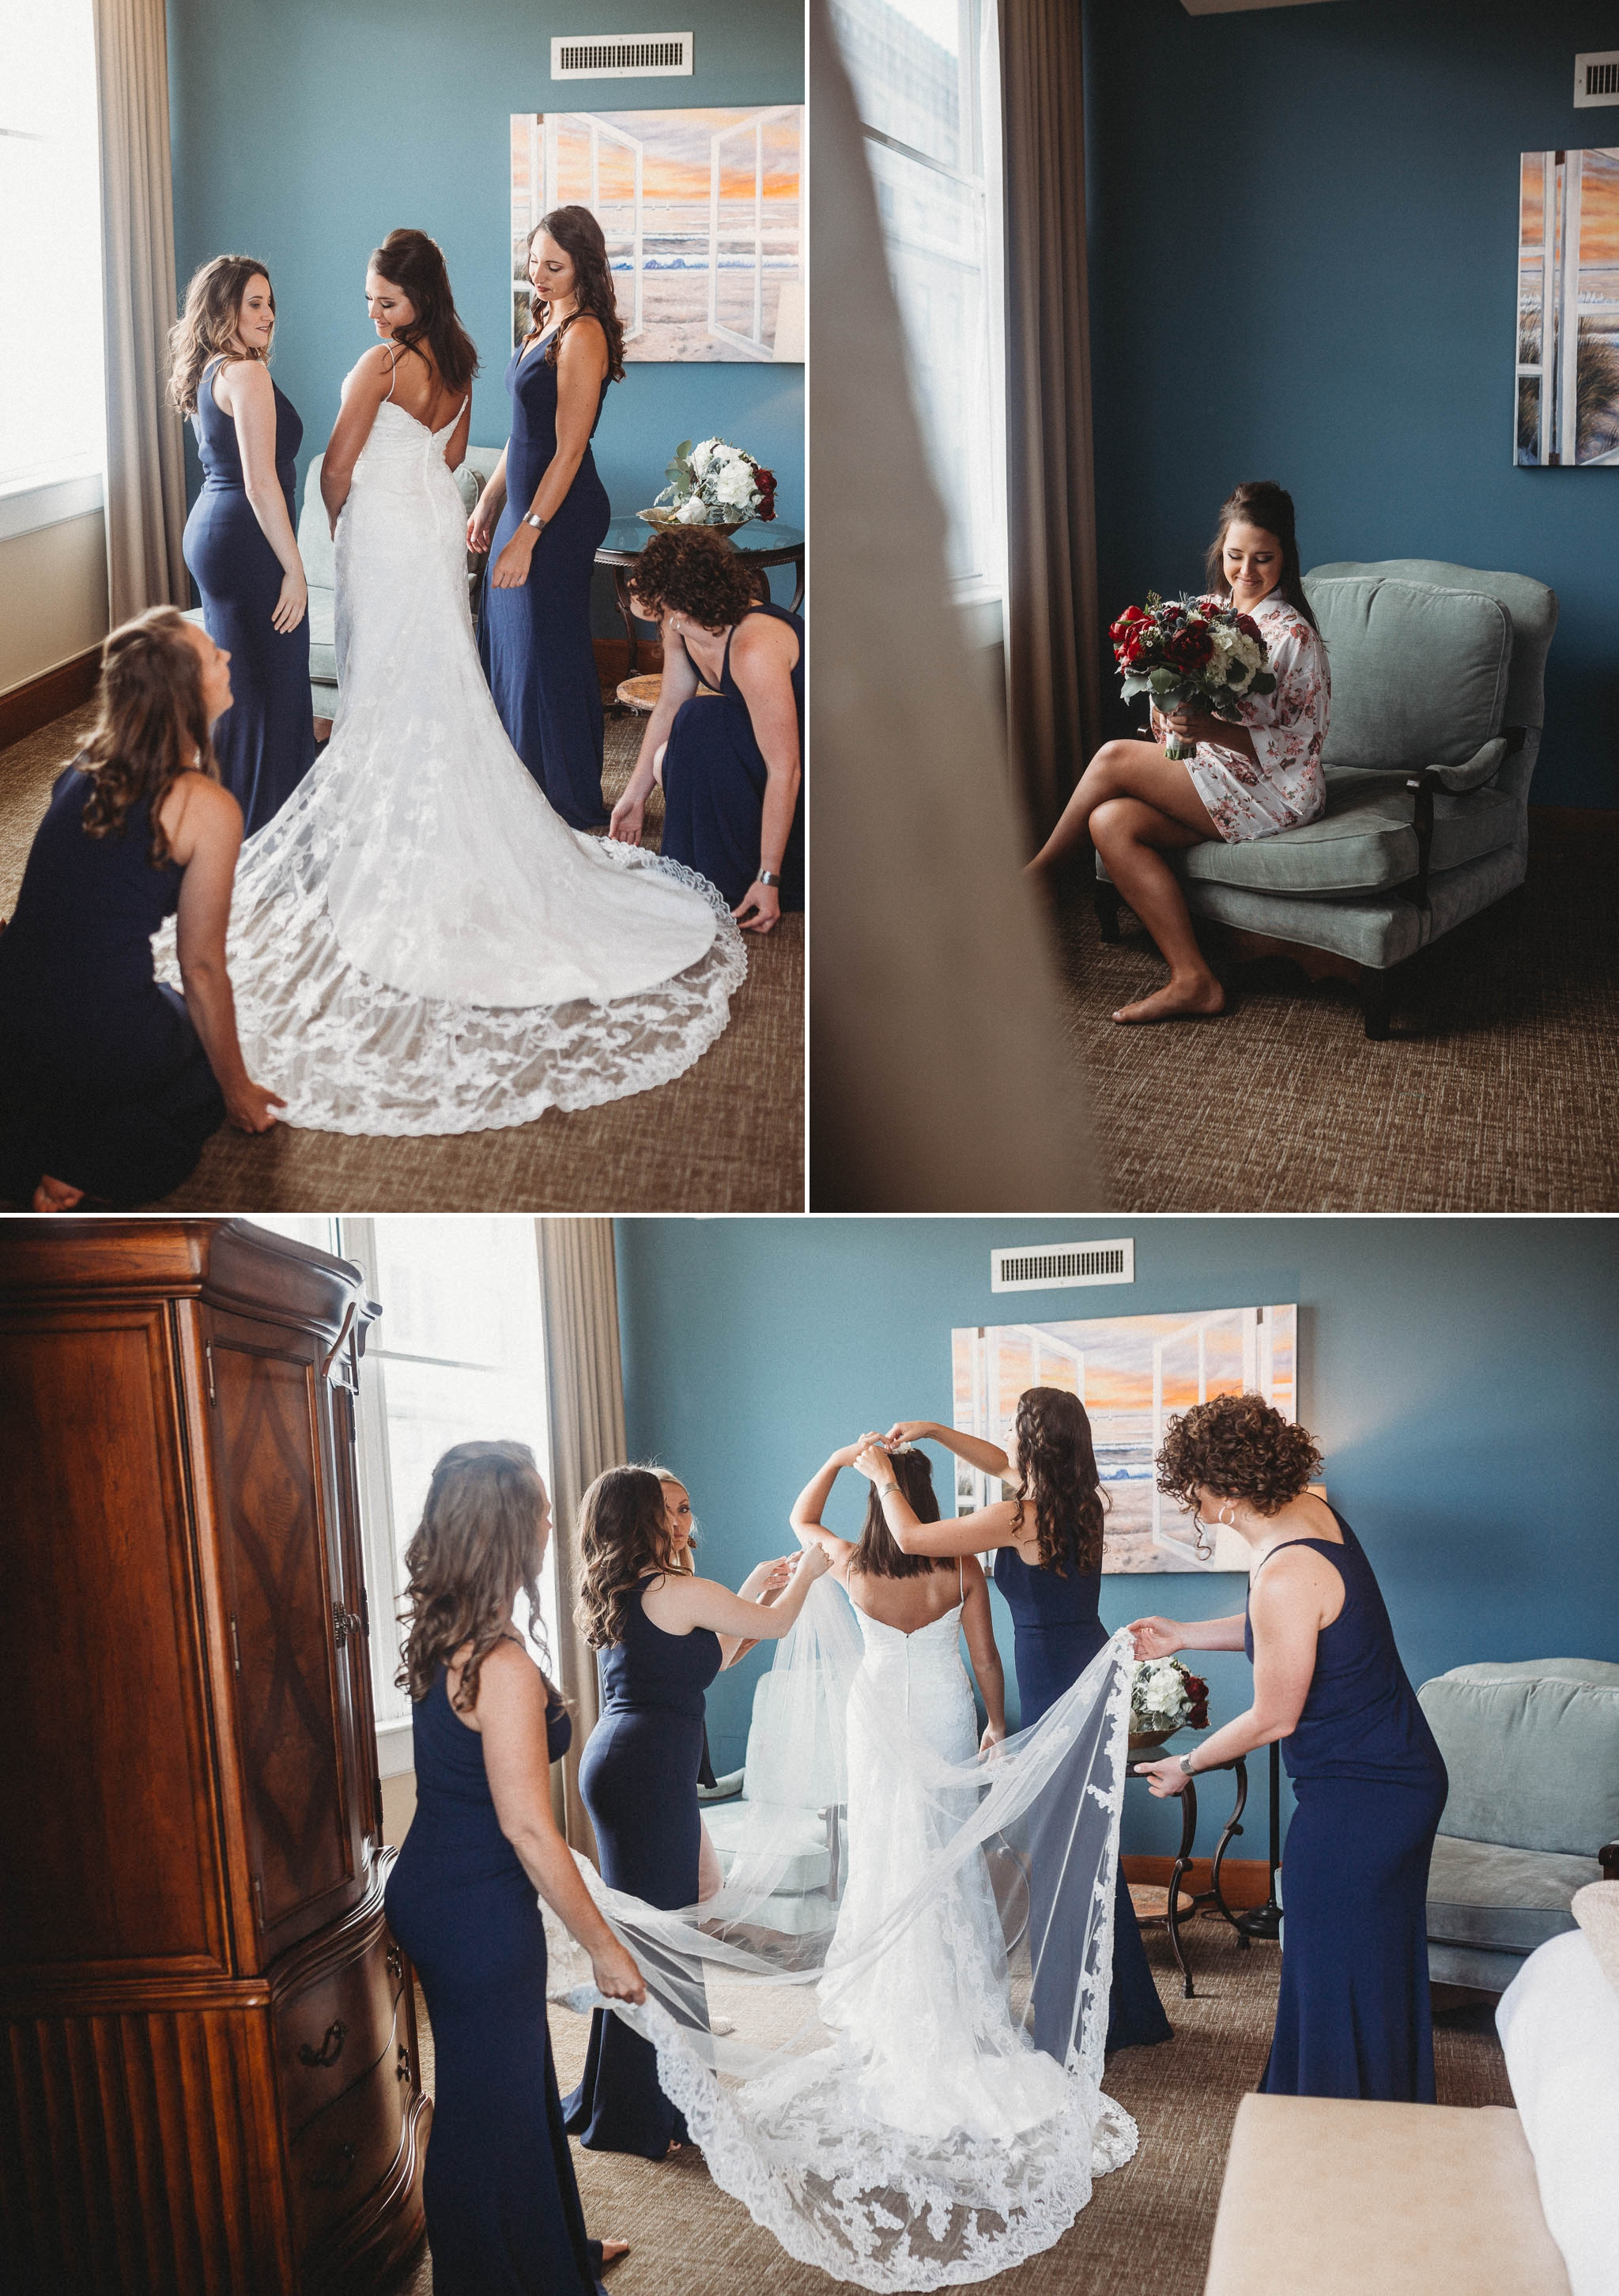 Bride getting ready with her Bridesmaids at Haywood Park Hotel Downtown Megan + Jon - Run away Elopement at the Blue Ridge Park Way in Asheville, North Carolina